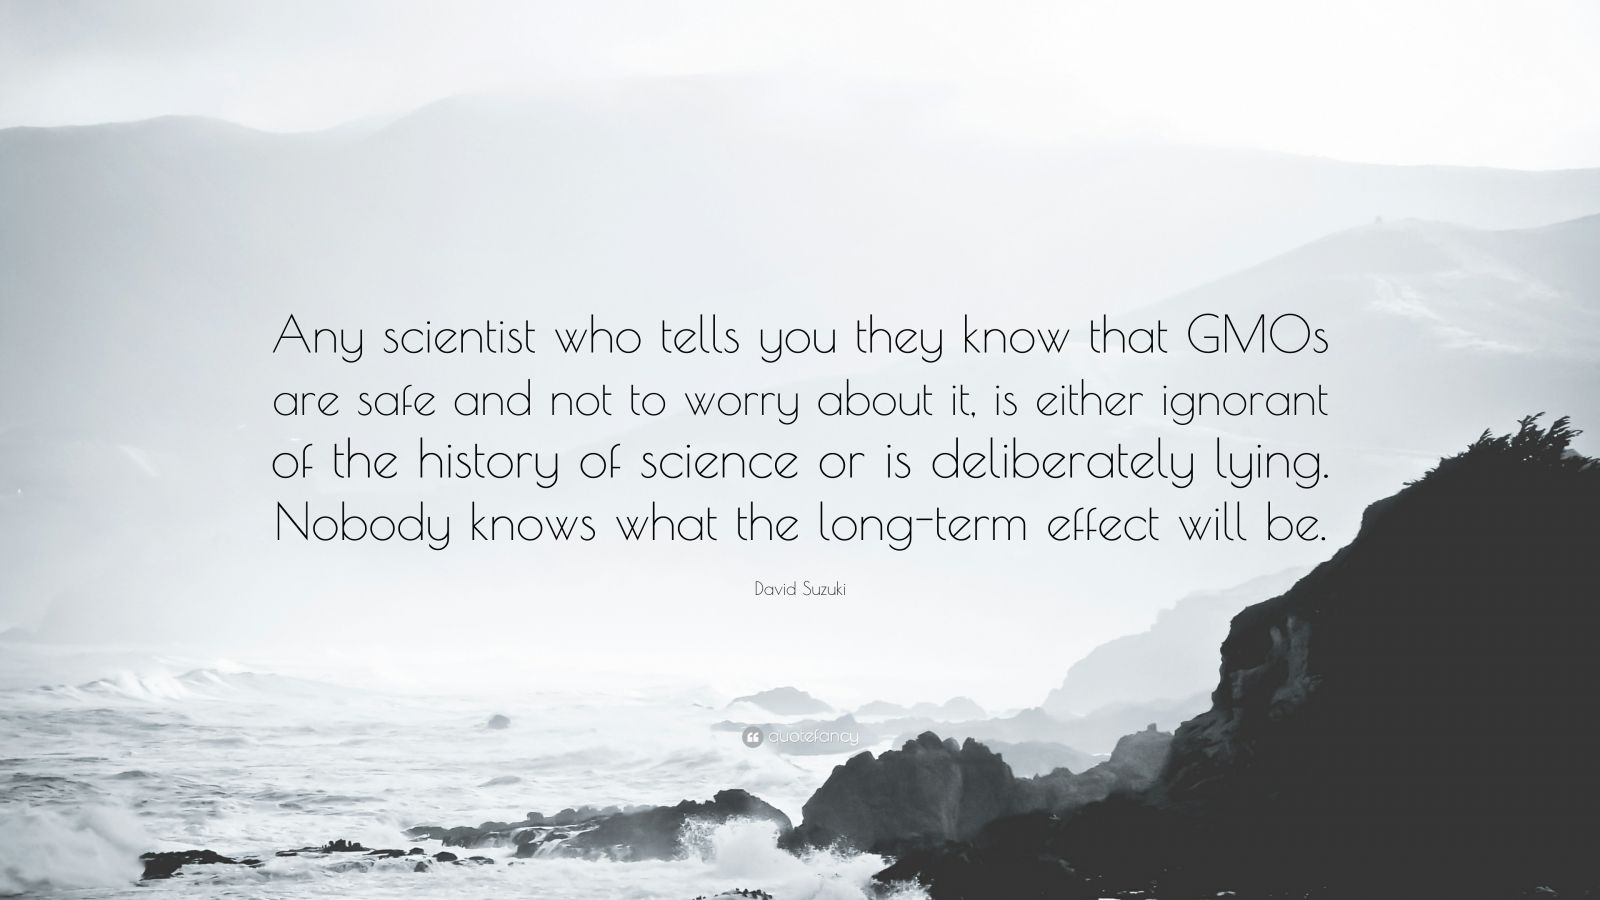 """David Suzuki Quote: """"Any scientist who tells you they know that GMOs are safe and not to worry about it, is either ignorant of the history of science or is deliberately lying. Nobody knows what the long-term effect will be."""""""